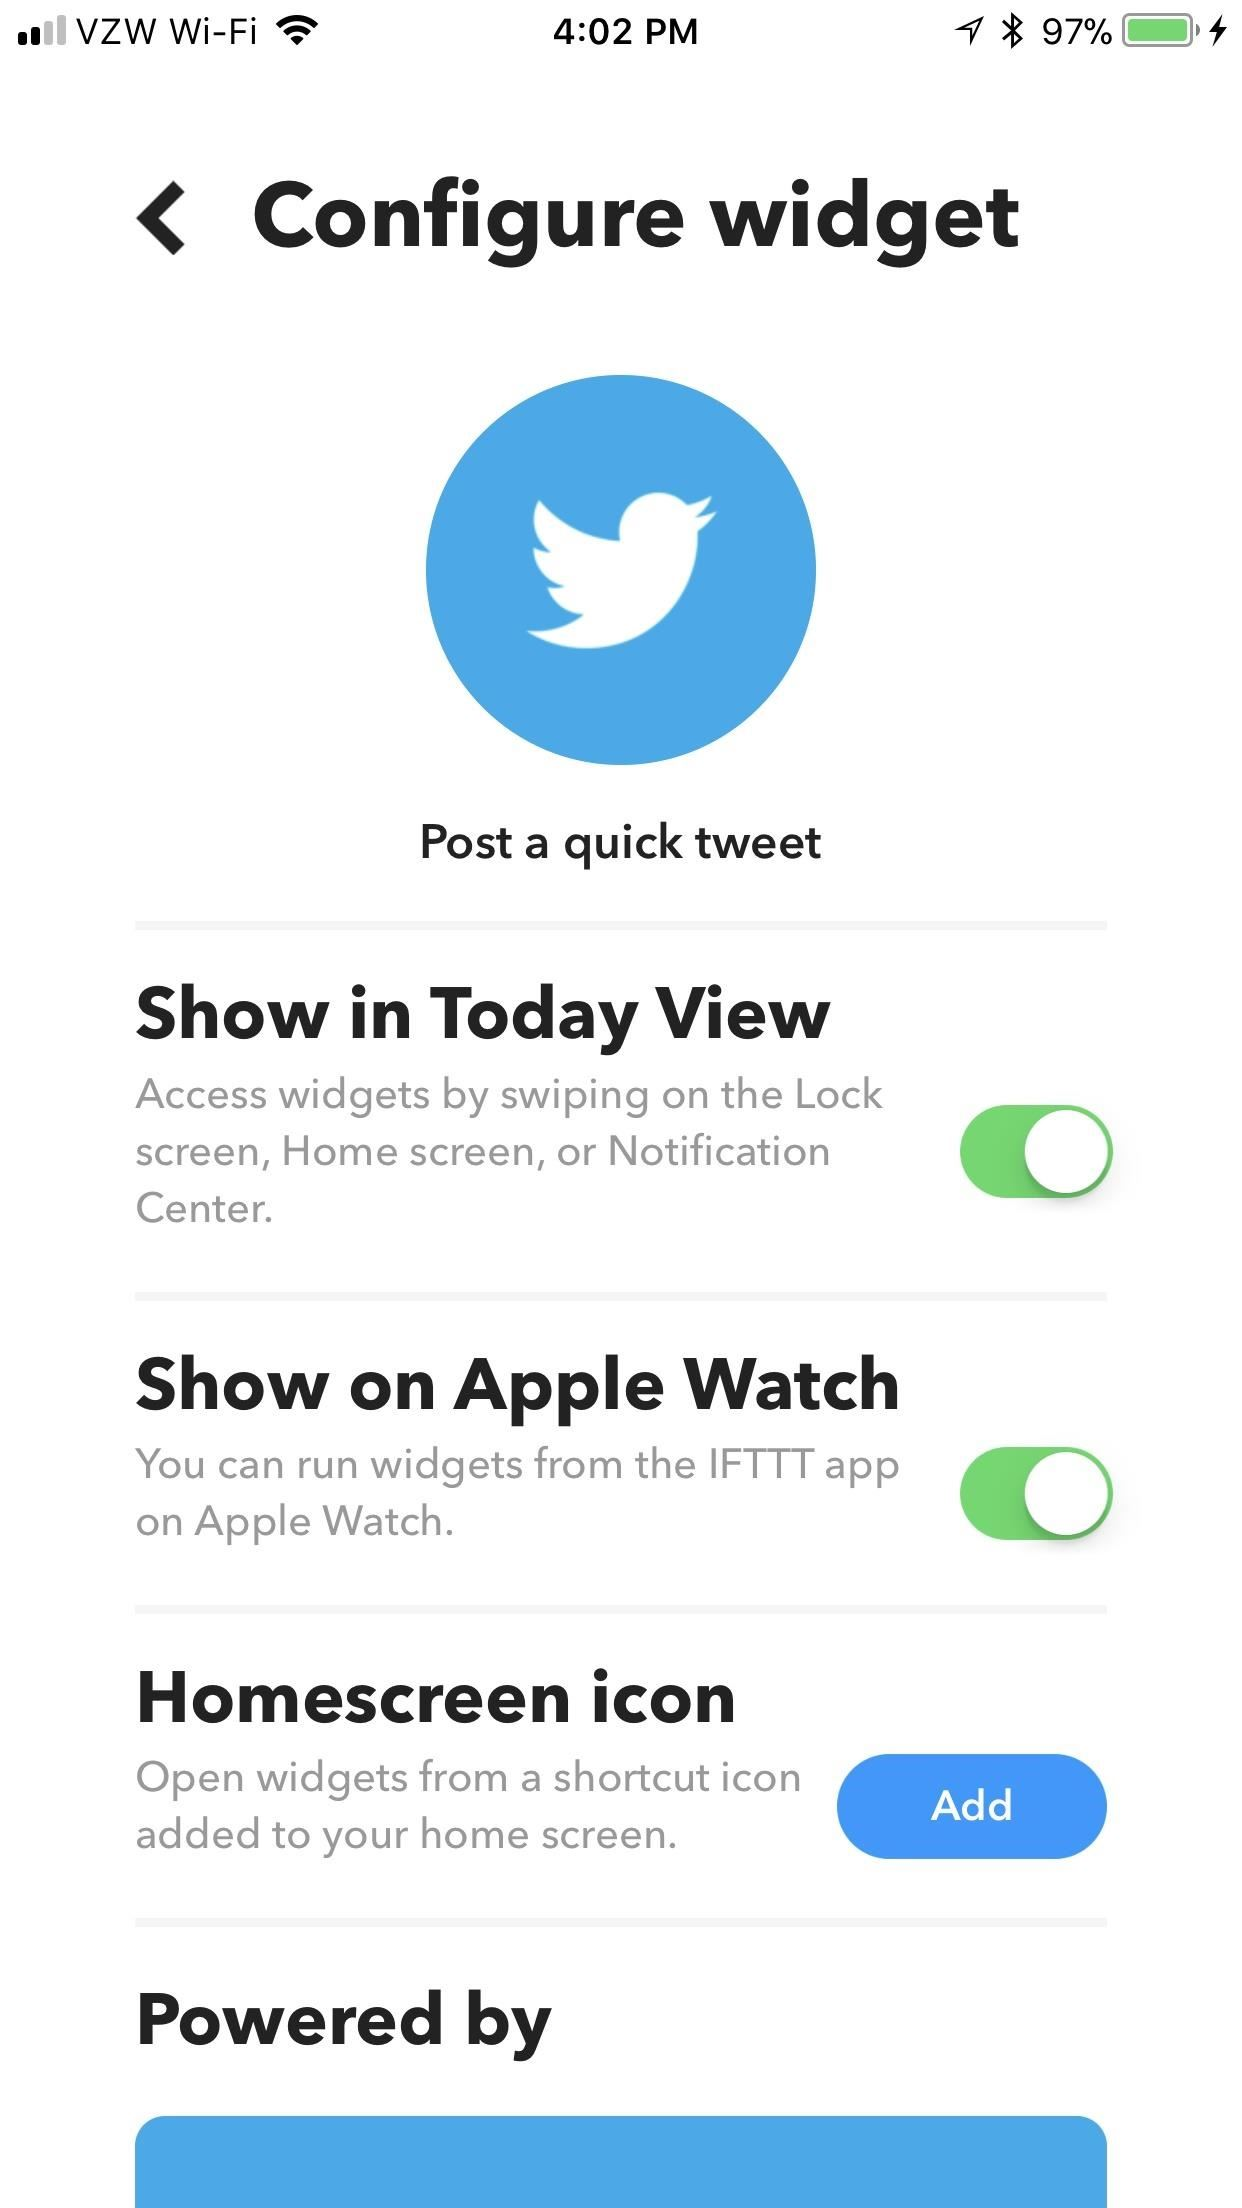 IFTTT 101: How to Use Widgets to Control Your Favorite Applets on iPhone or Android